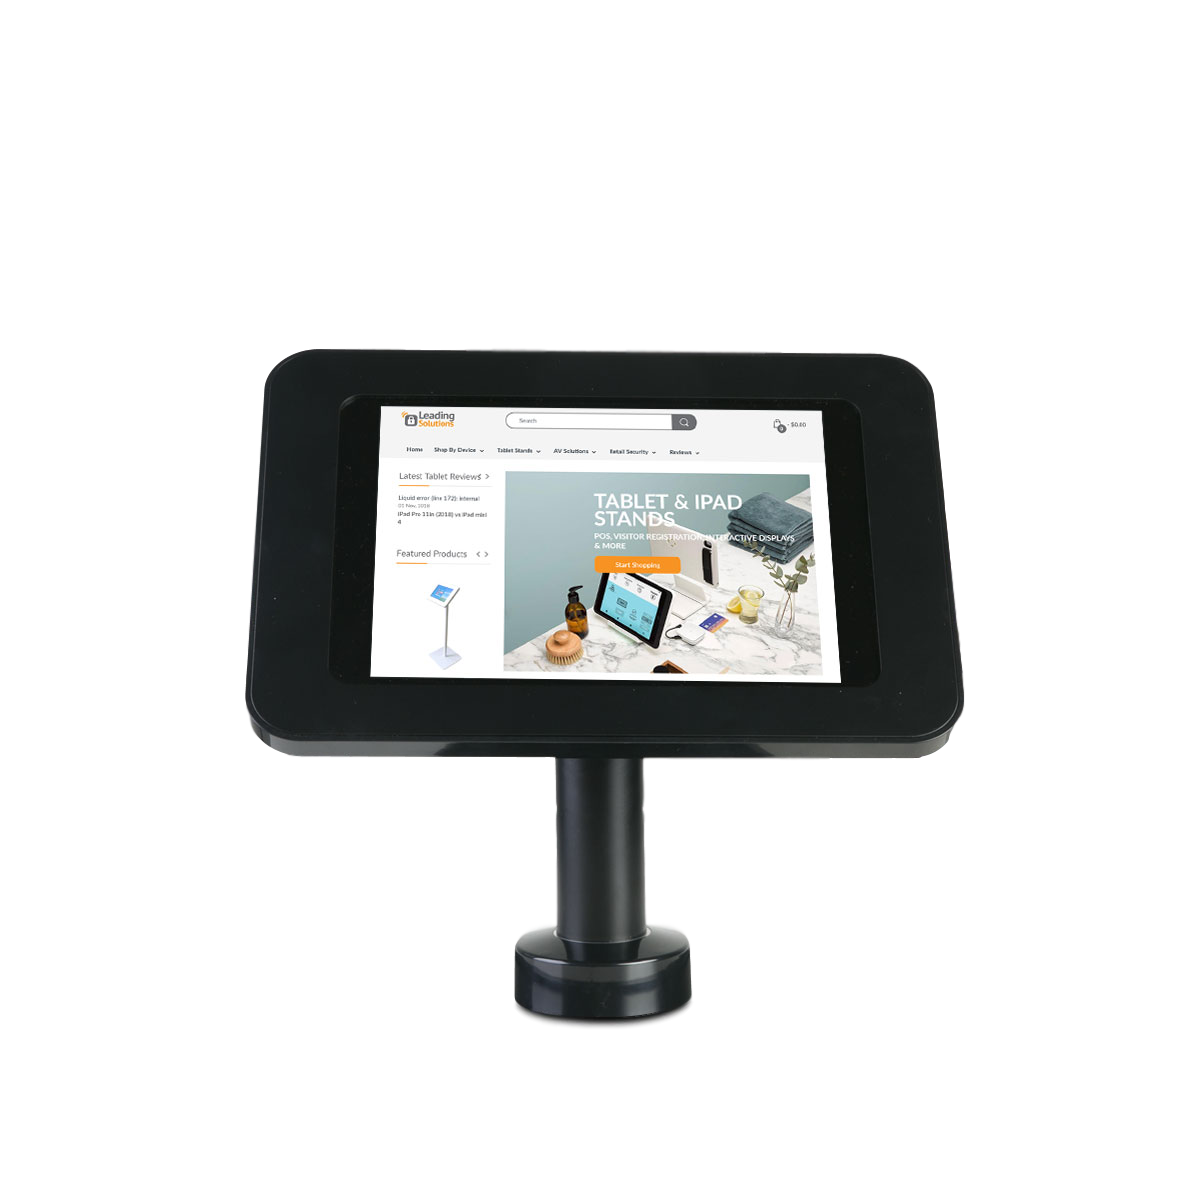 Tab Secure Desk Stand with Rotating Base for iPads and Tablets, black color, front view